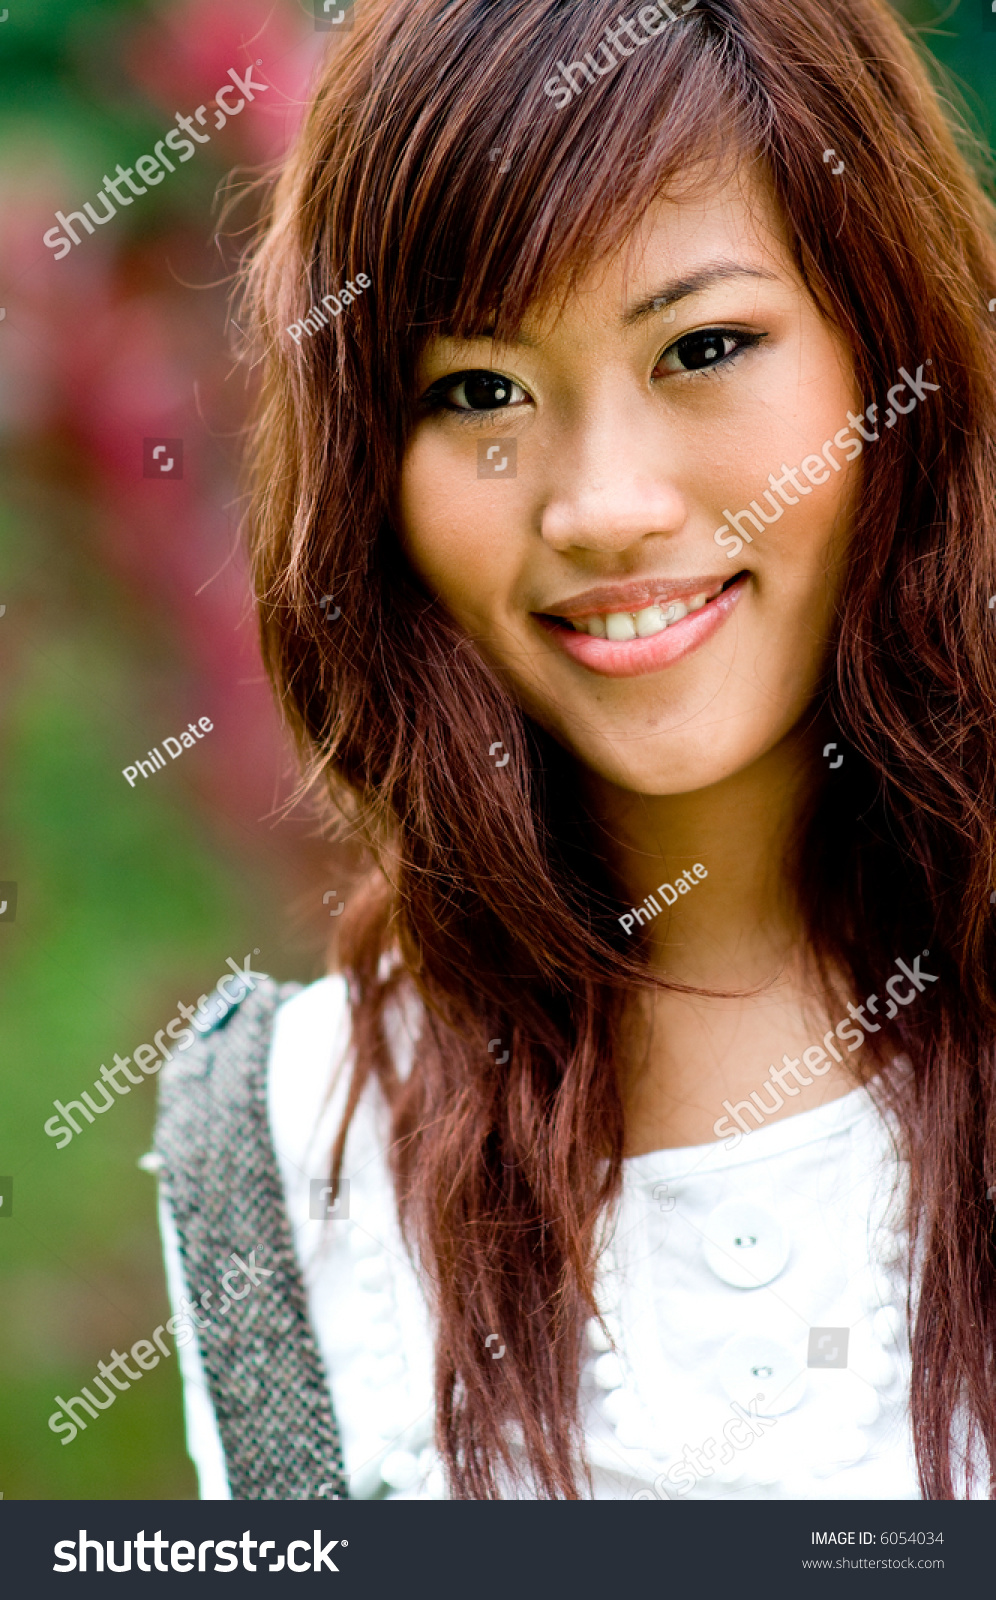 japanese dating site for gaijin entertainment stock '#1 trusted dating site every day, an average of 438 singles marry a match they found on eharmony it's free to review your single, compatible matches.